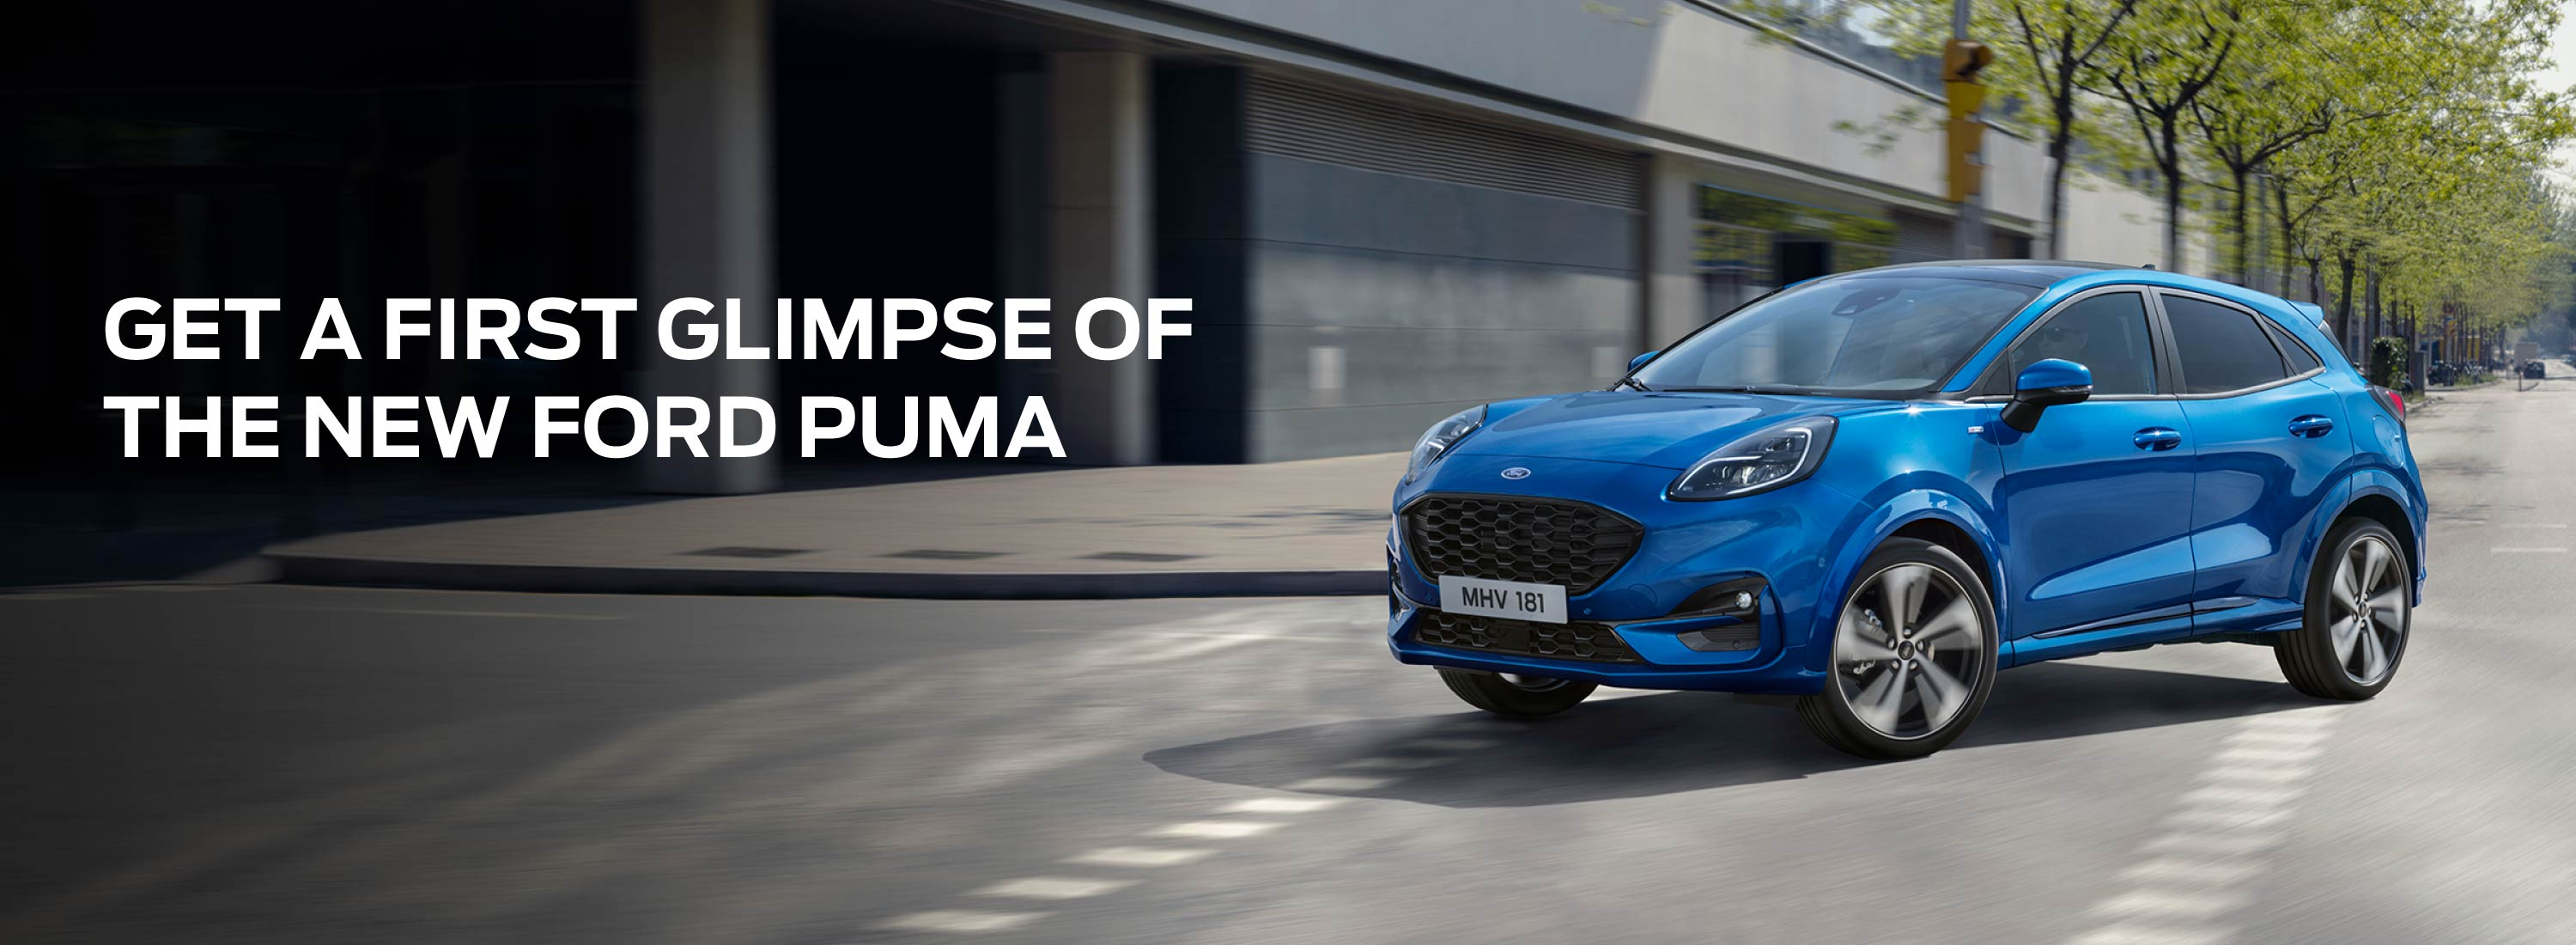 NEW FORD PUMA Banner